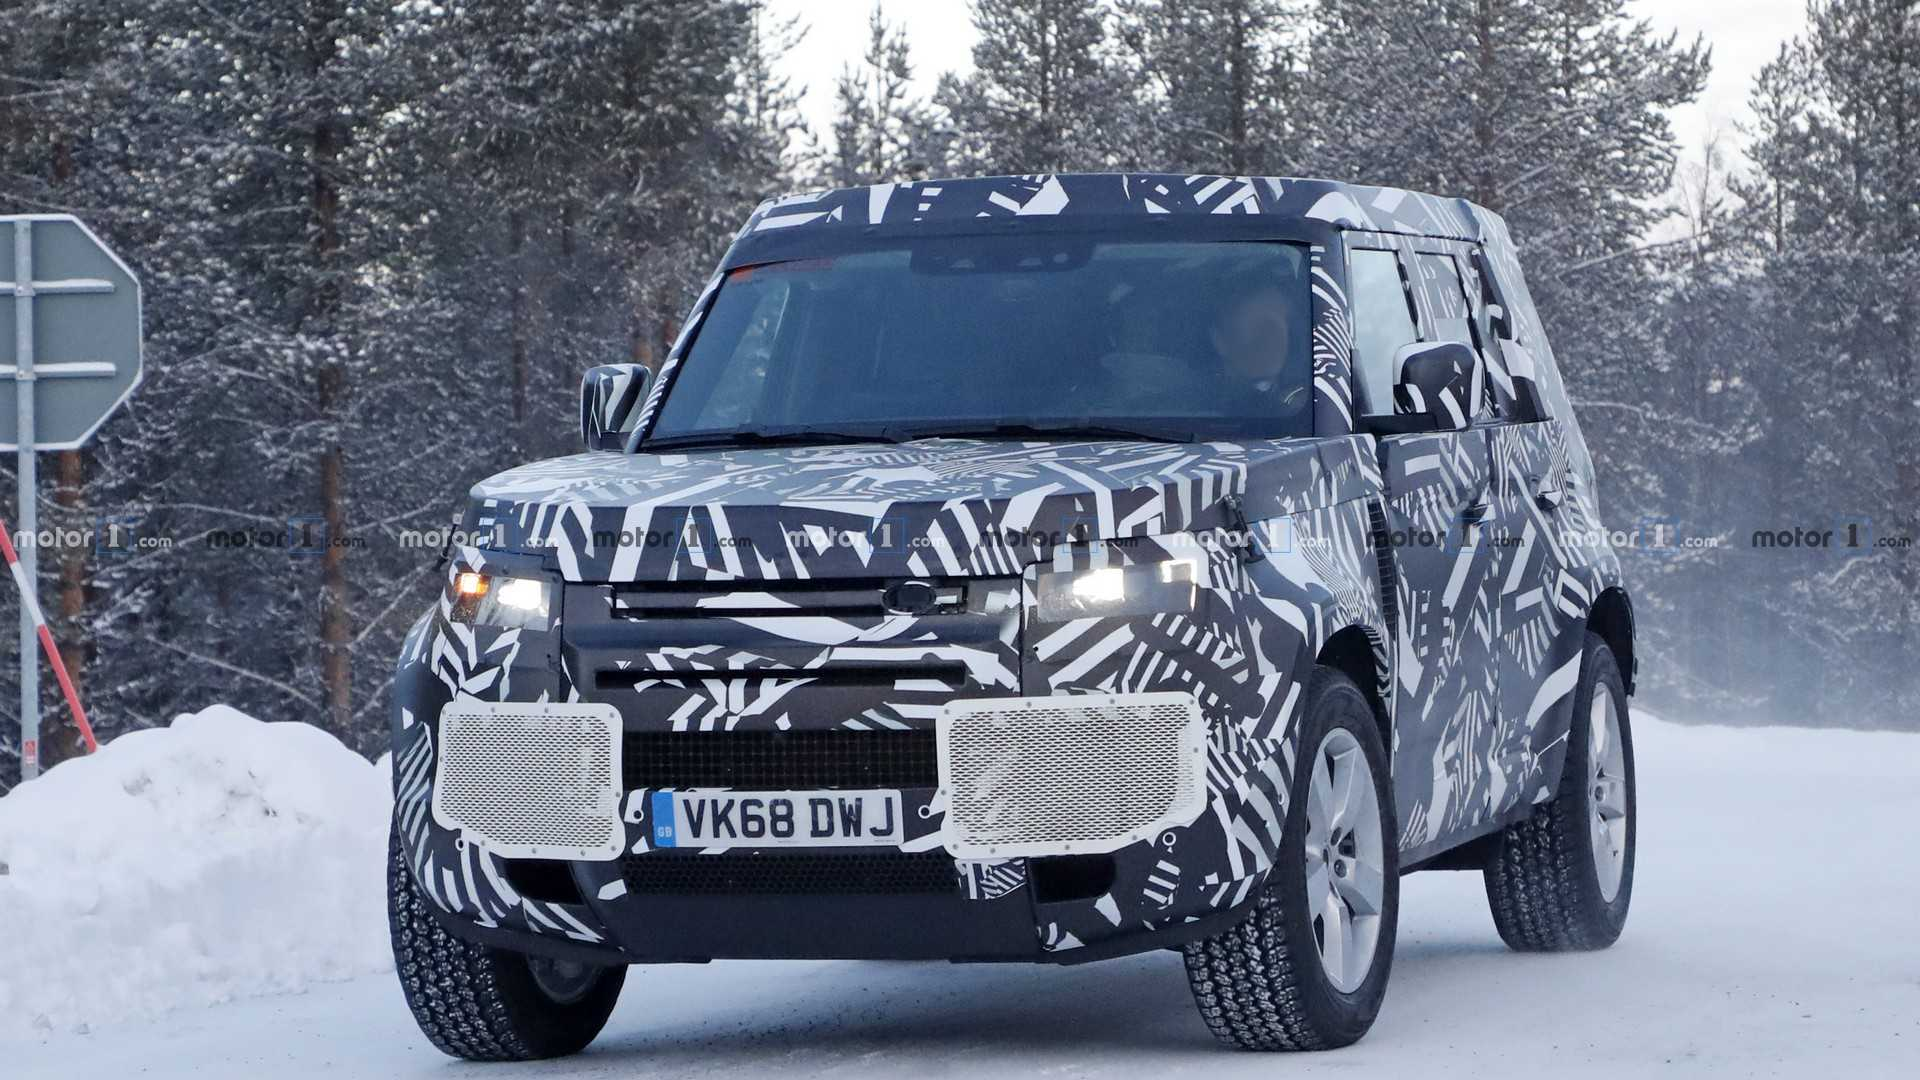 65 All New Jaguar Land Rover Defender 2020 Specs And Review